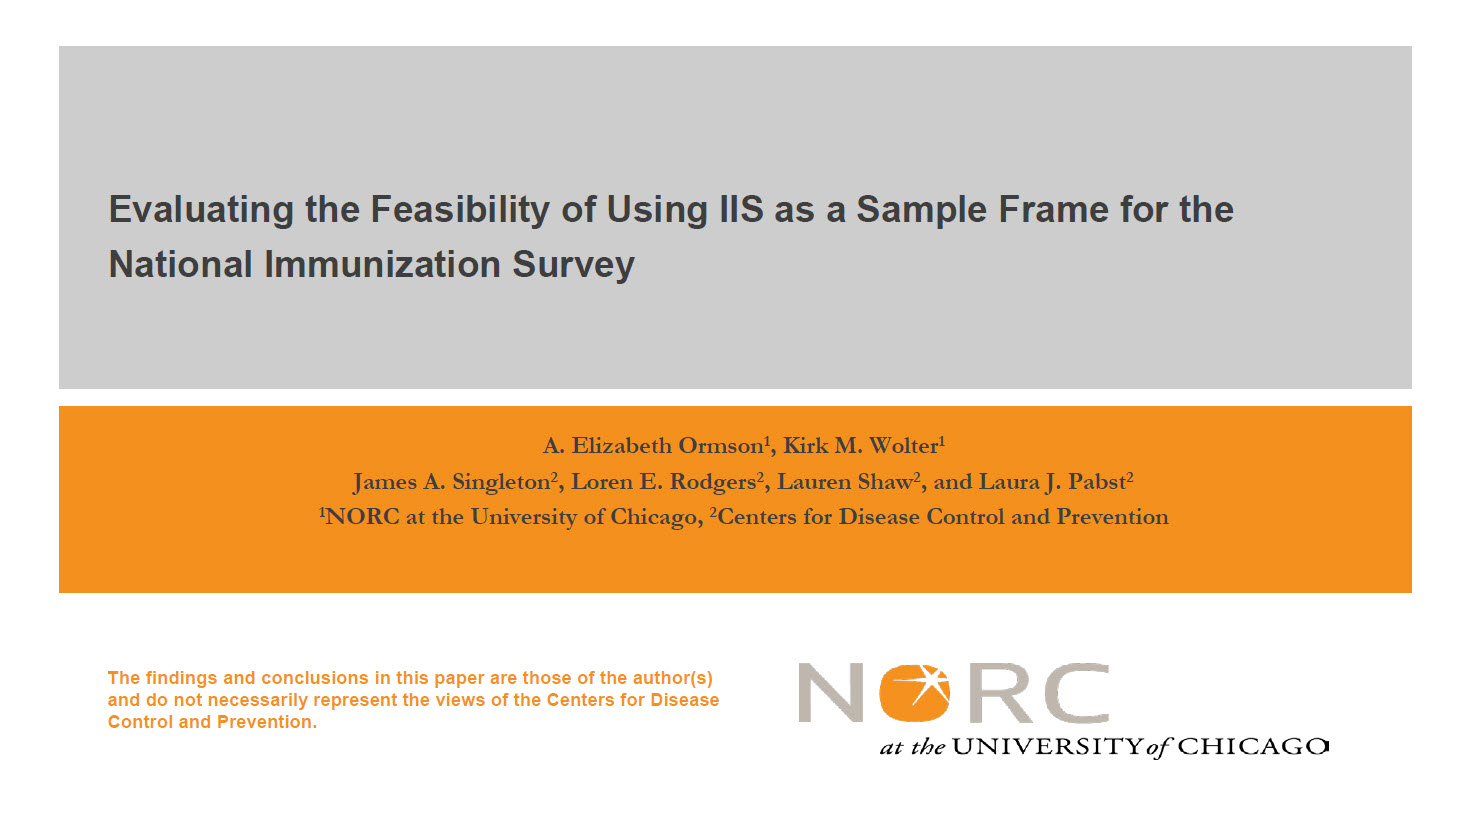 Evaluating the Feasibility of Using IIS as a Sample Frame for the NIS